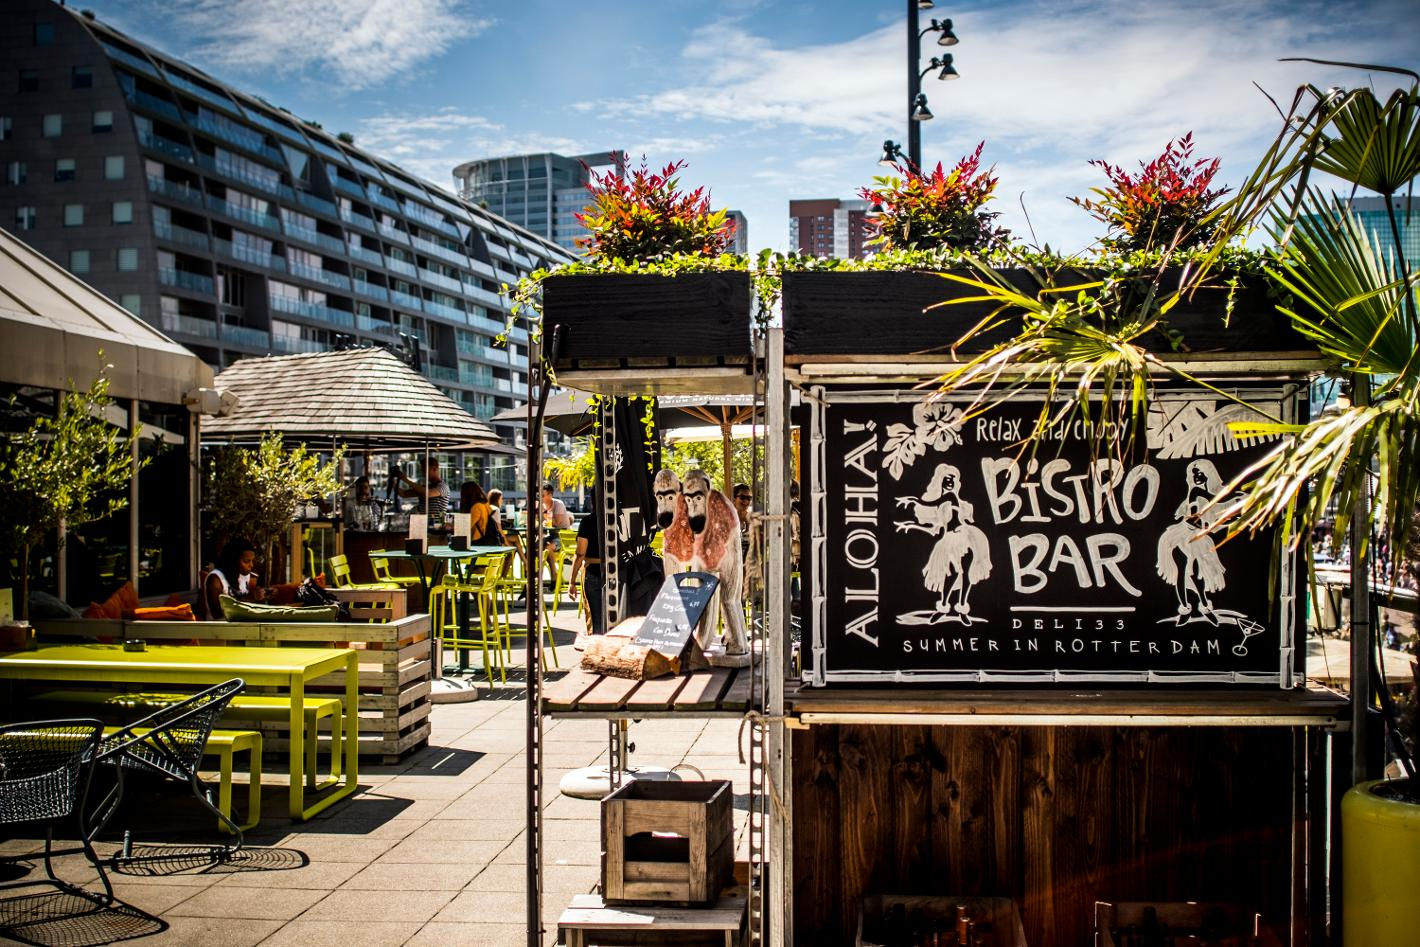 Photo Bistrobar Binnenrotte & het Stadsterras in Rotterdam, Eat & drink, Lunch, Dining - #3